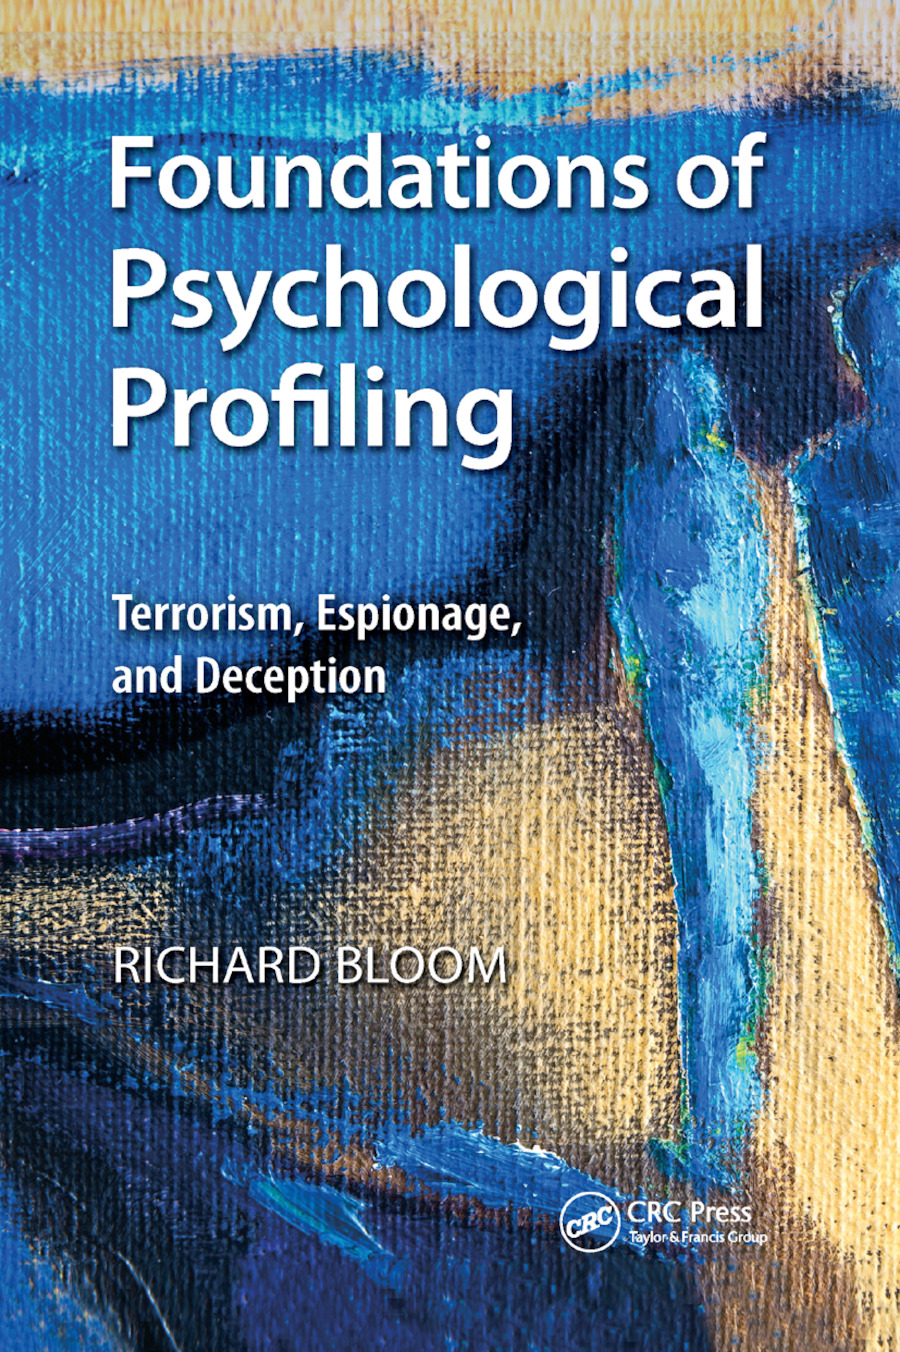 Foundations of Psychological Profiling: Terrorism, Espionage, and Deception book cover